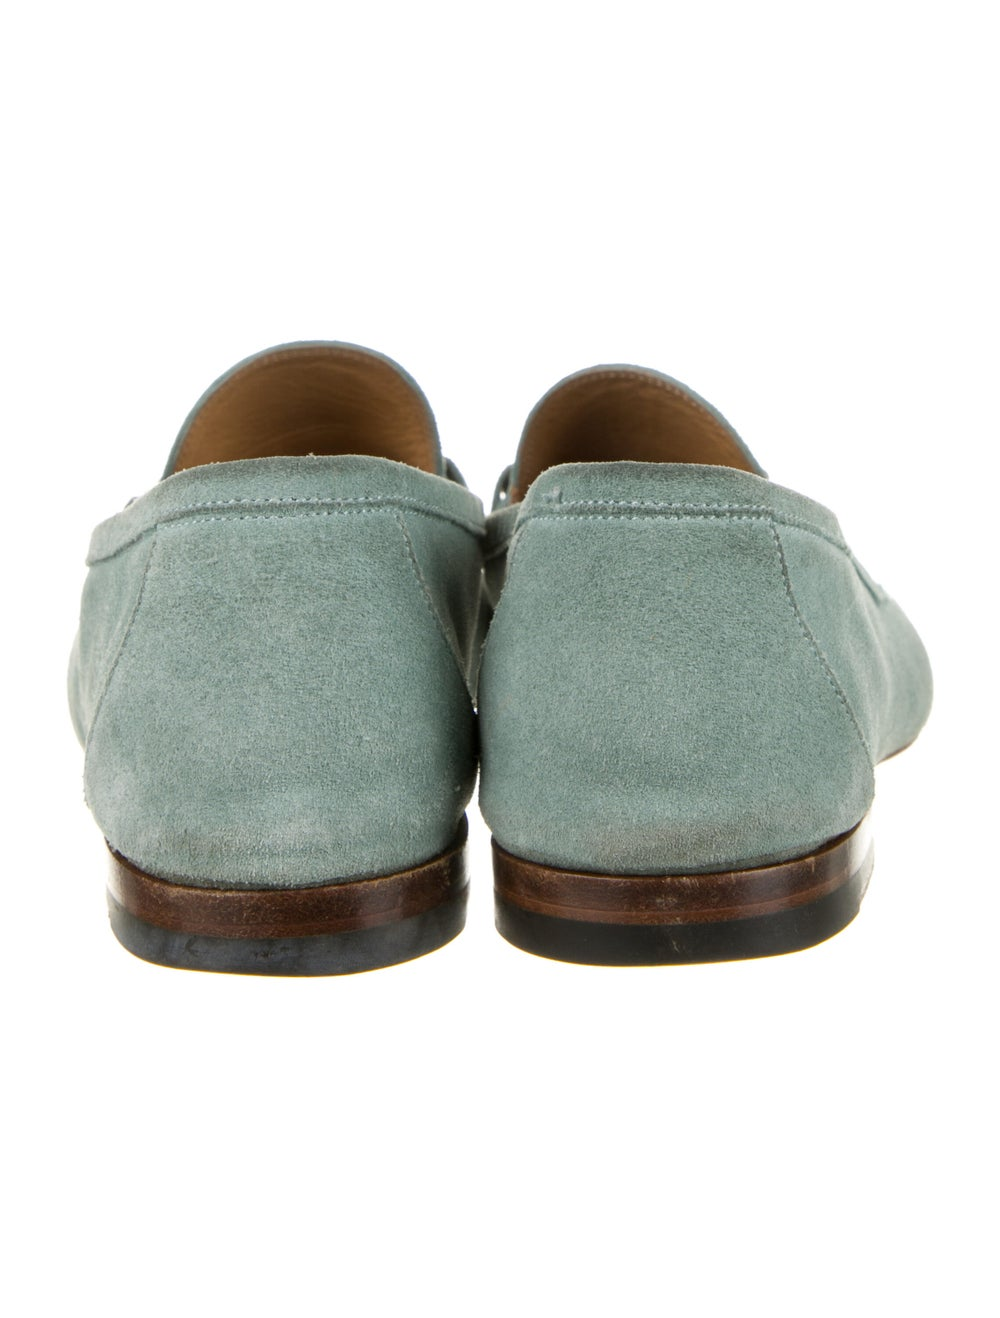 Gucci Horsebit Accent Suede Loafers Green - image 4